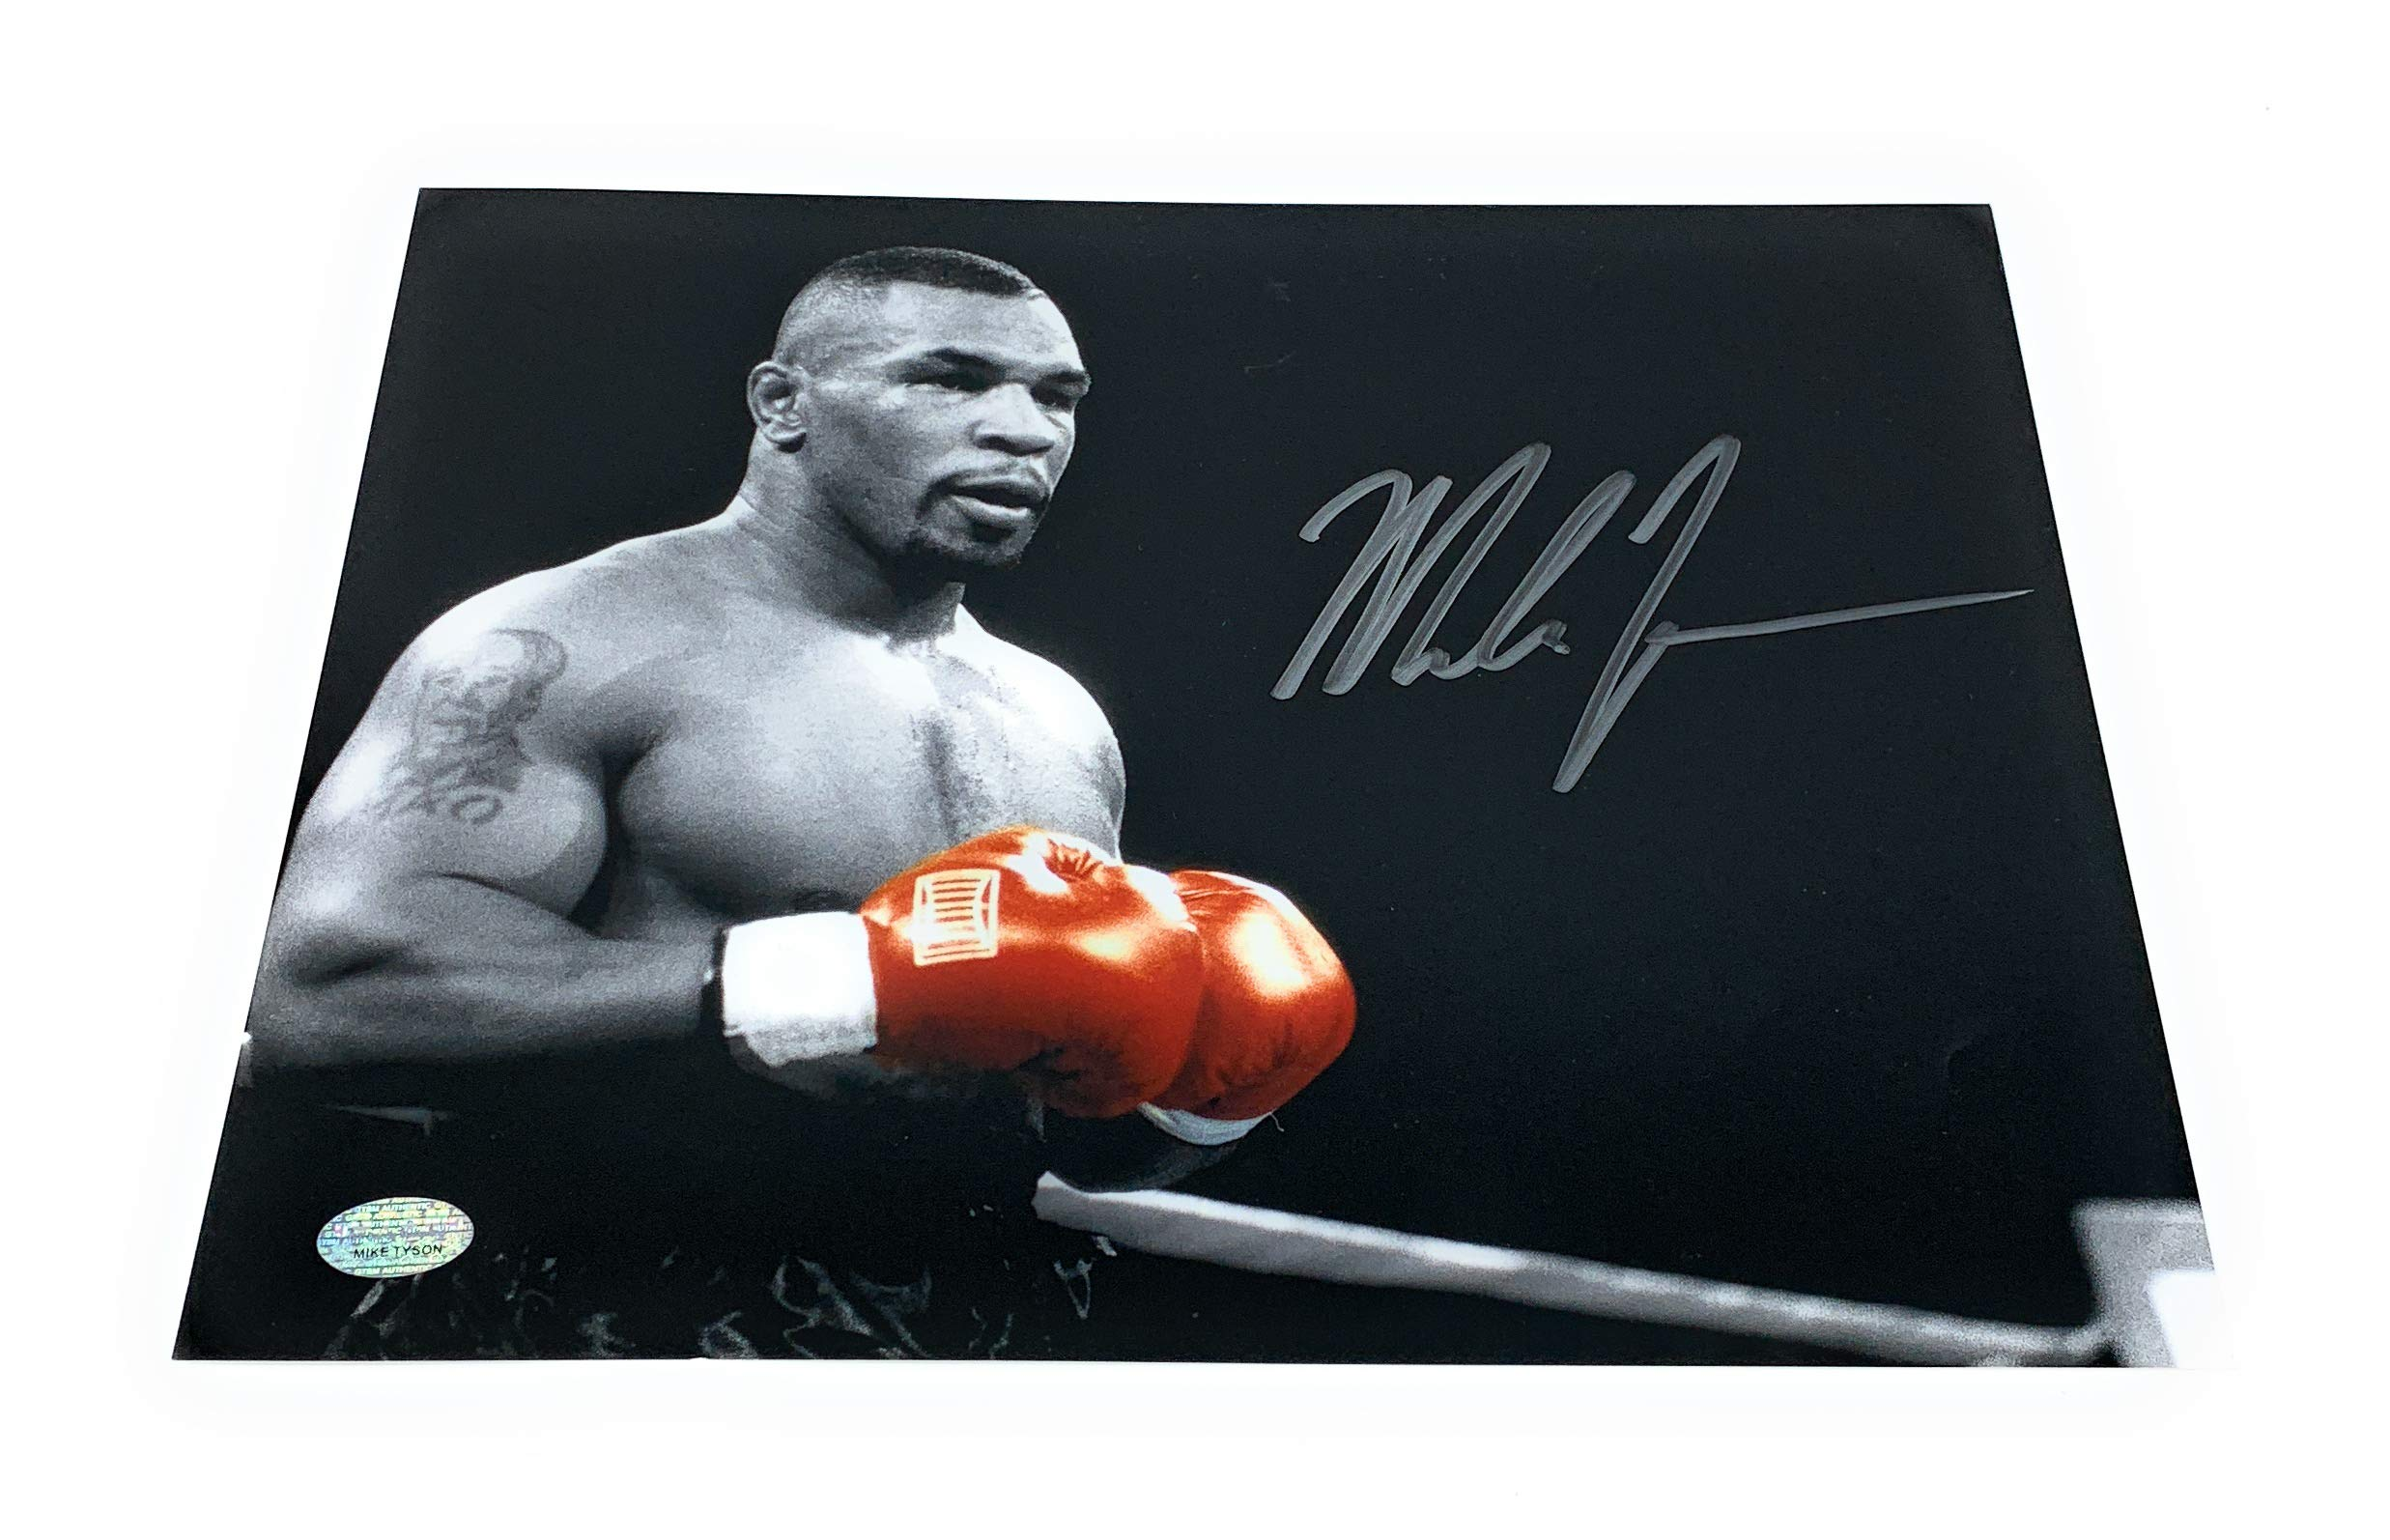 Mike Tyson Boxing Signed Autograph 8x10 Photo Photograph B&W GTSM Tyson Hologram Certified